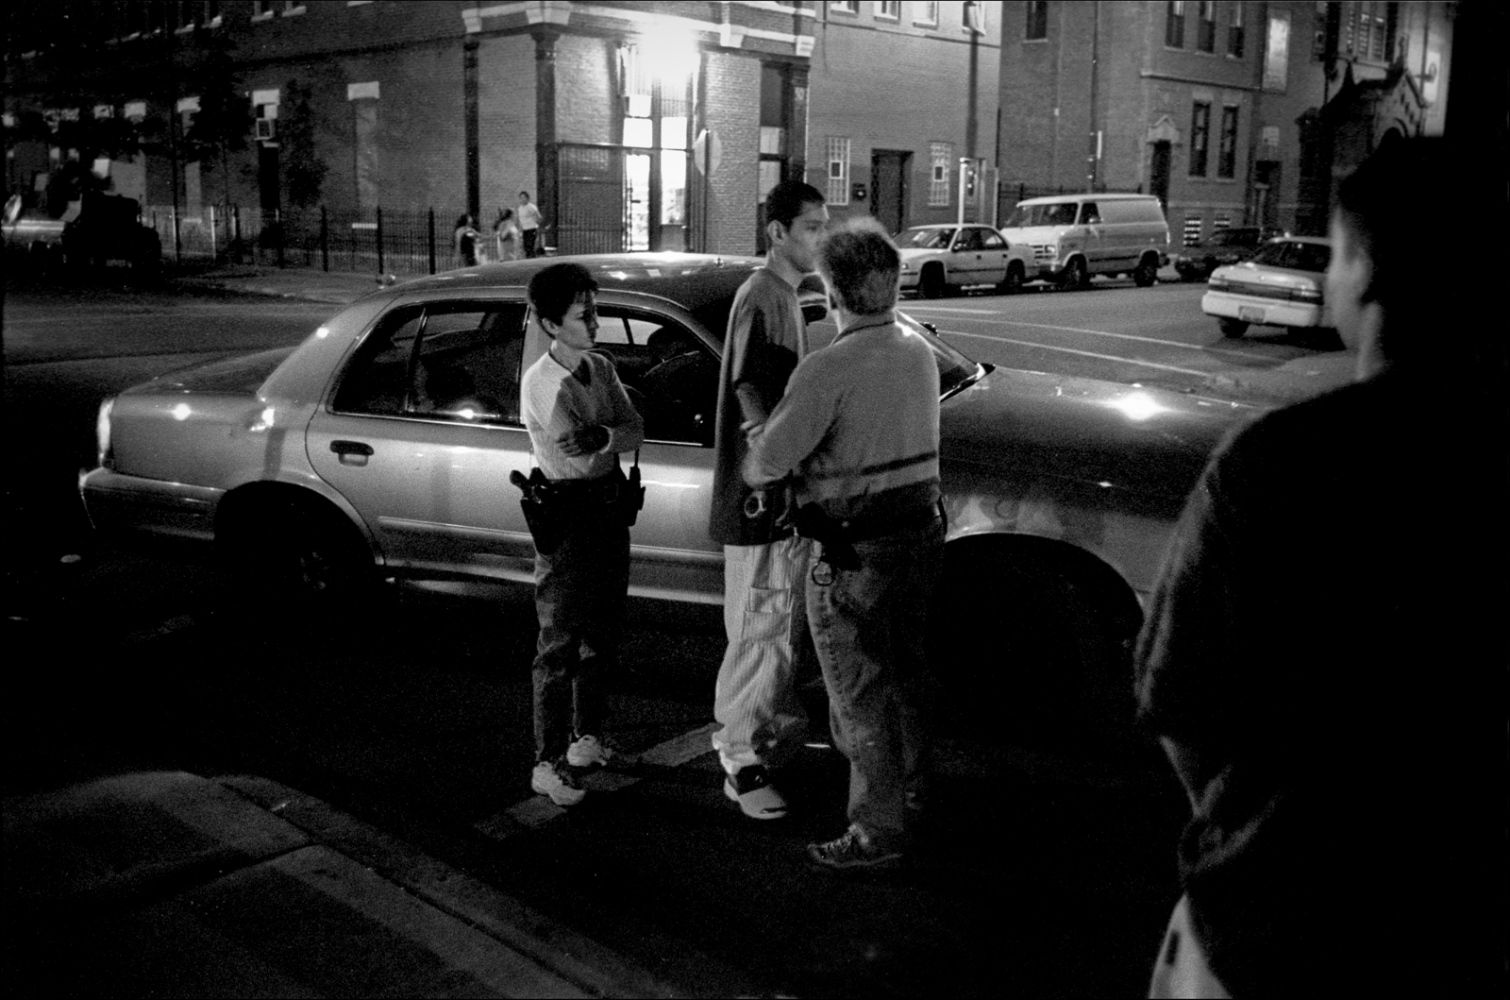 Alex is picked up by the police on 18th street.